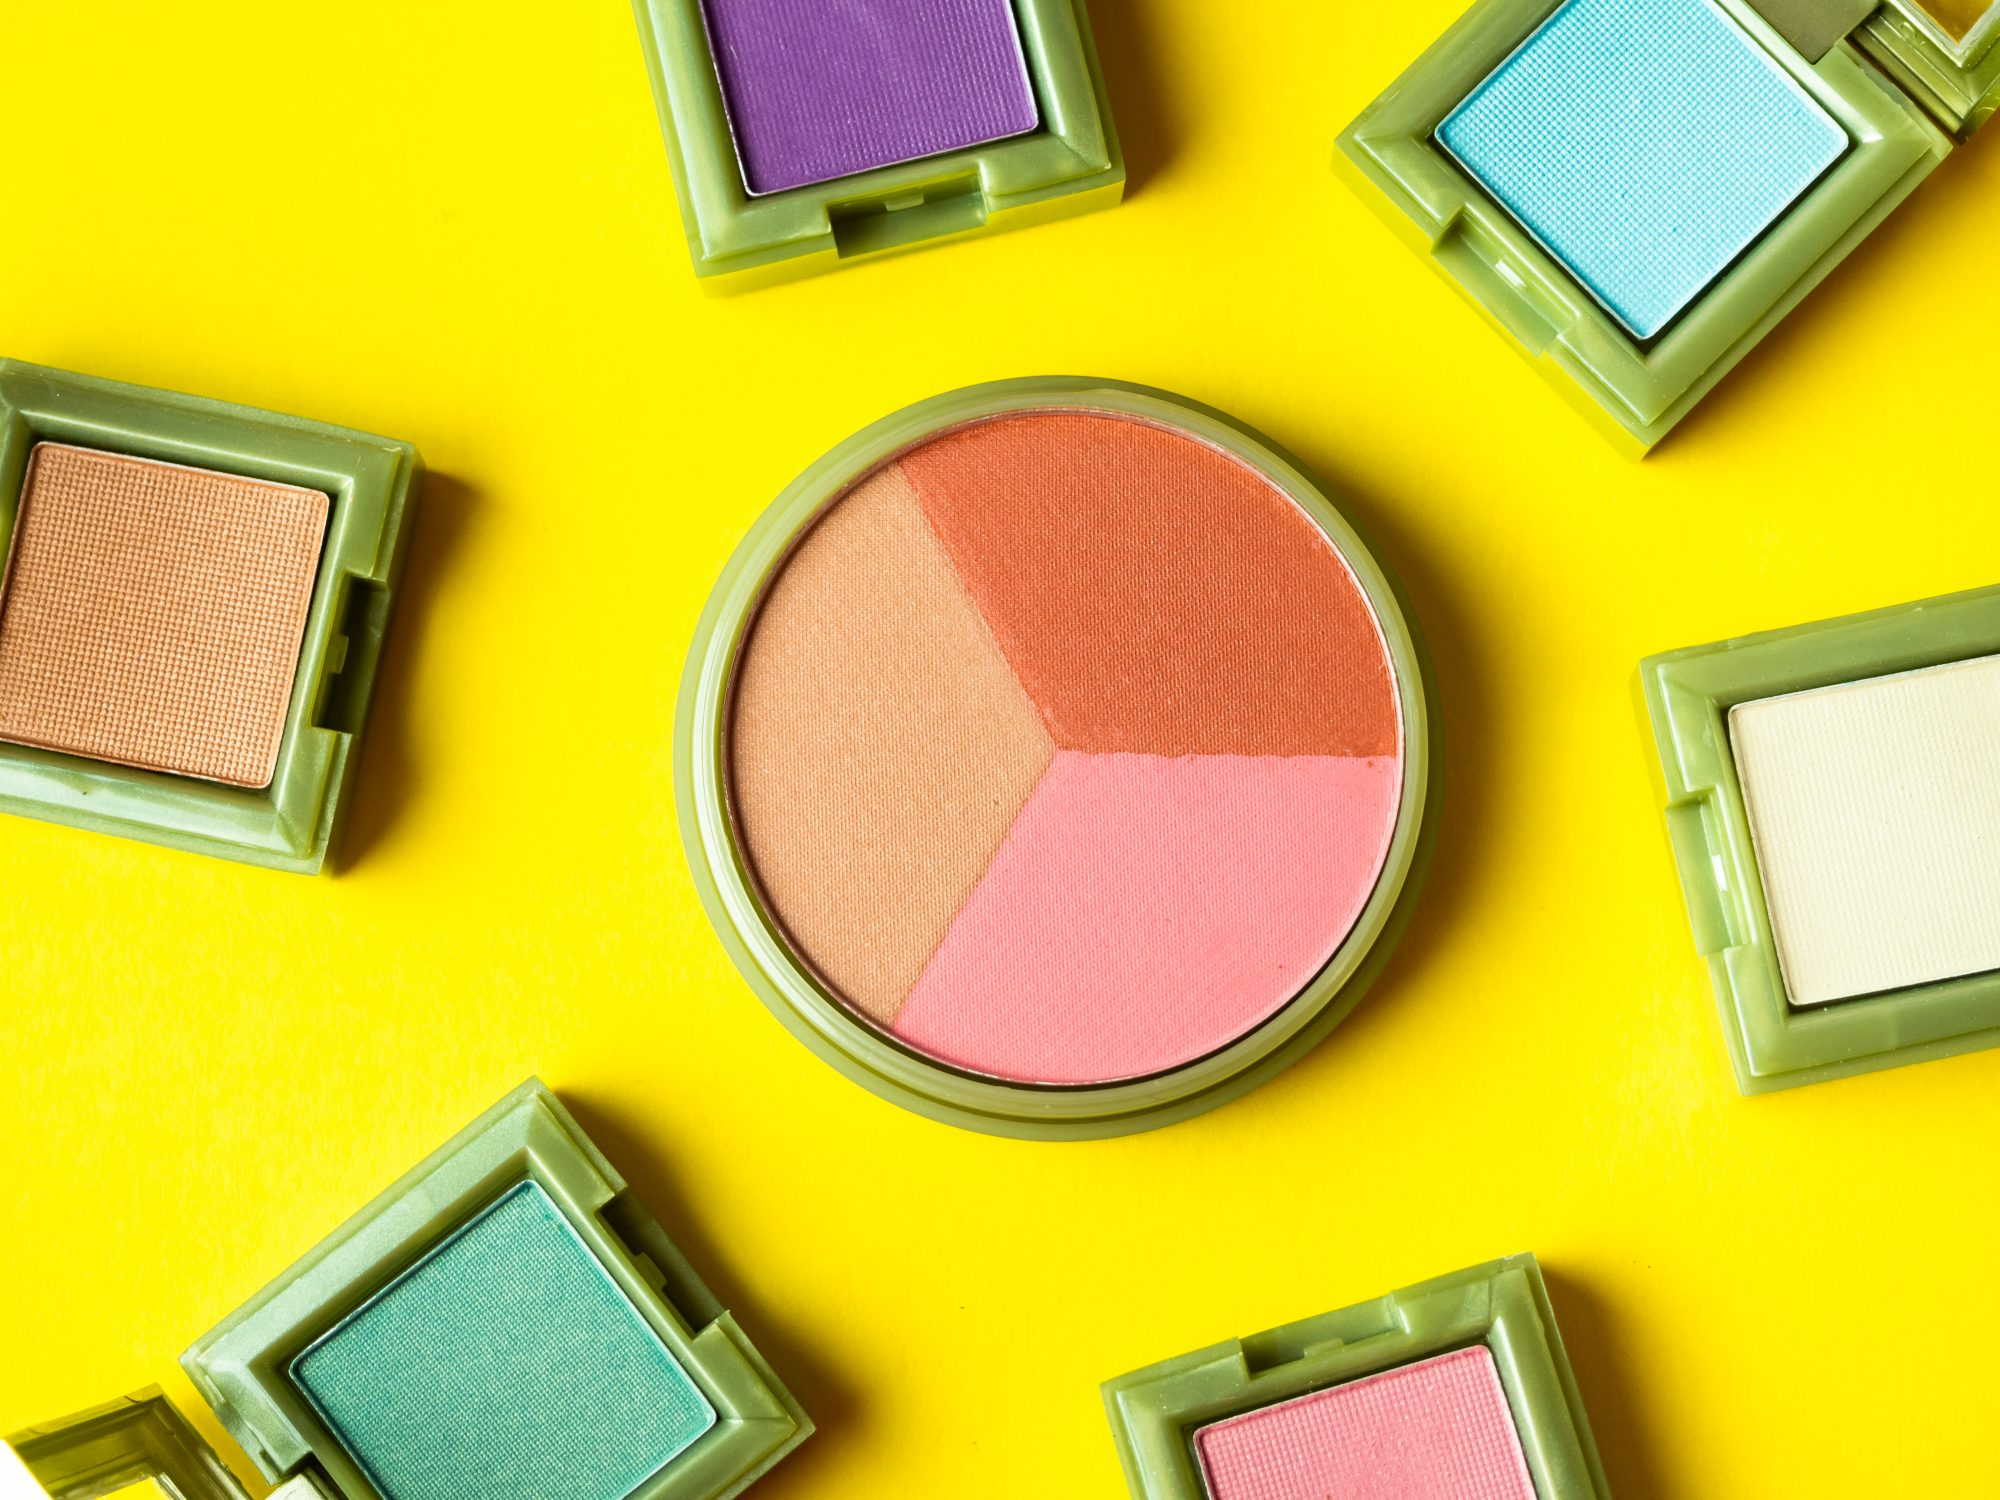 Makeup expiration dates guide - chart and dates for makeup and toiletry expiration